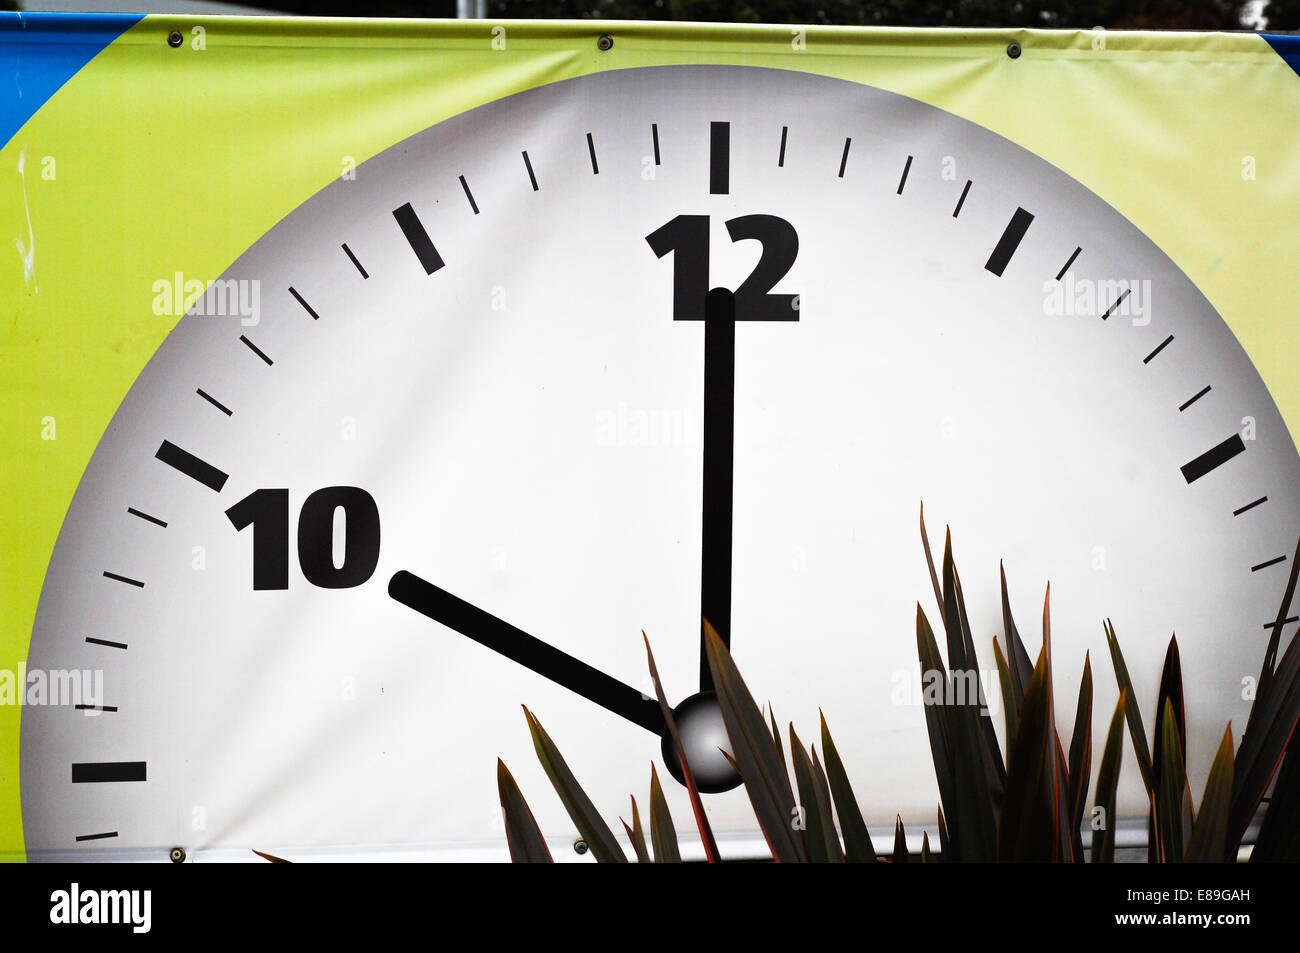 Clock face showing 10am - Stock Image